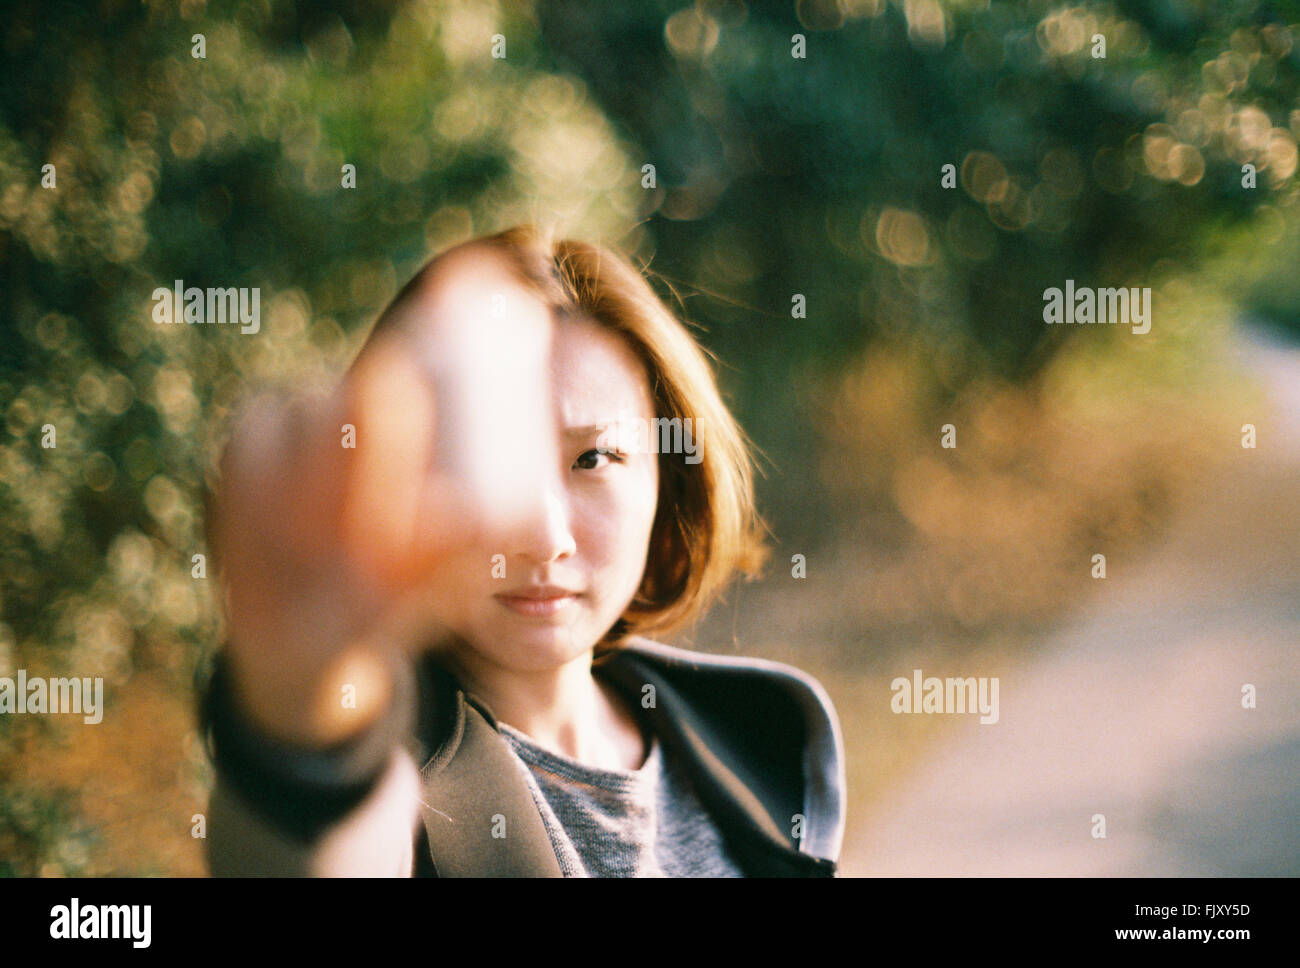 Close-Up Of Young Woman With Arm Raised - Stock Image